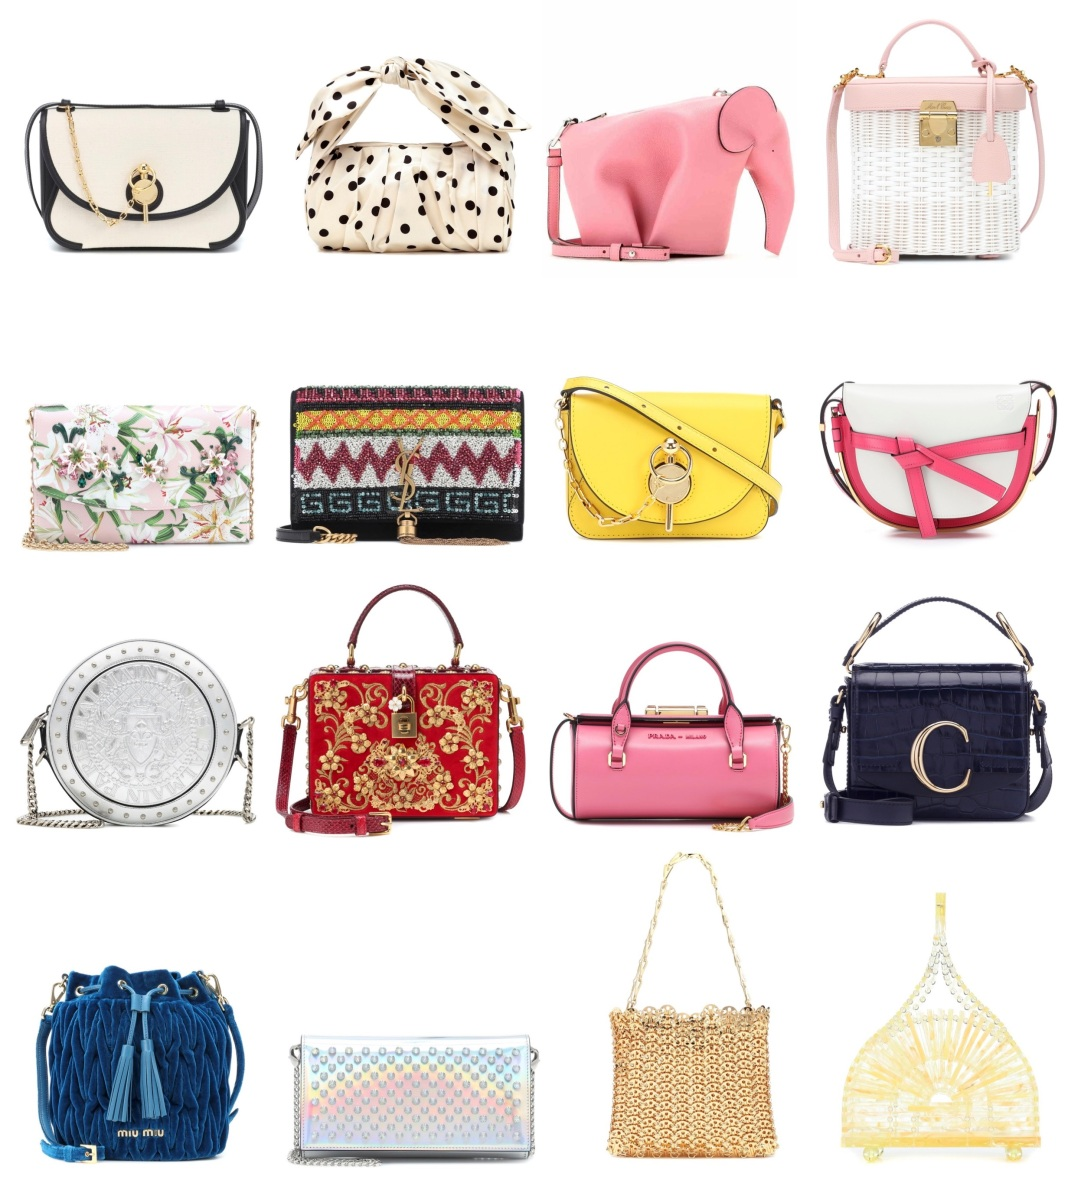 Little Objects of Desire: 42 Fancy designer bags for the Gayest summer looks!